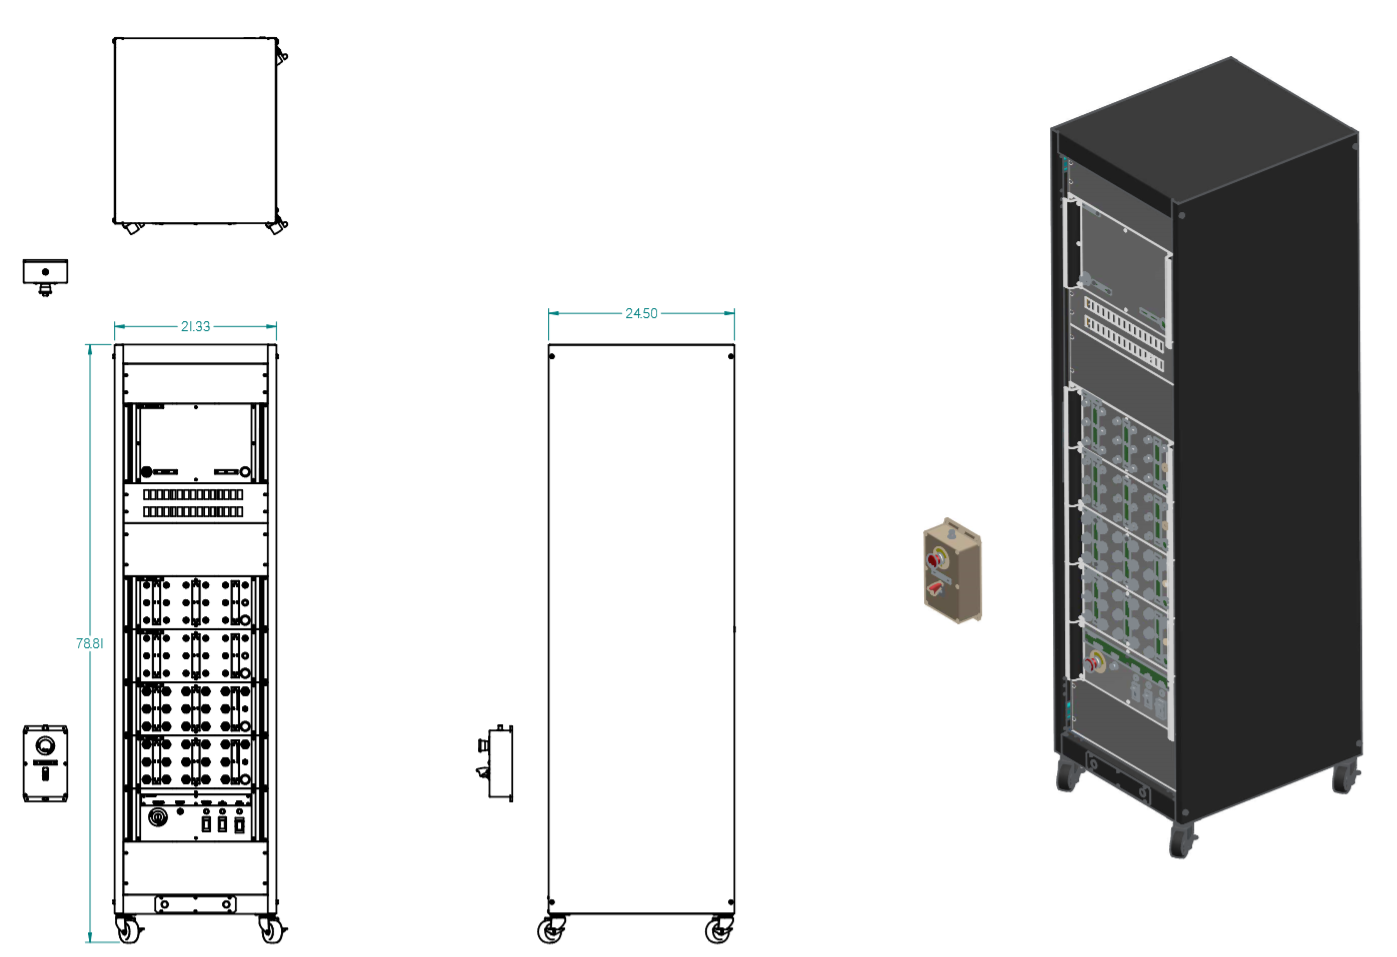 40U Rack Dimensions and ISOmetric view